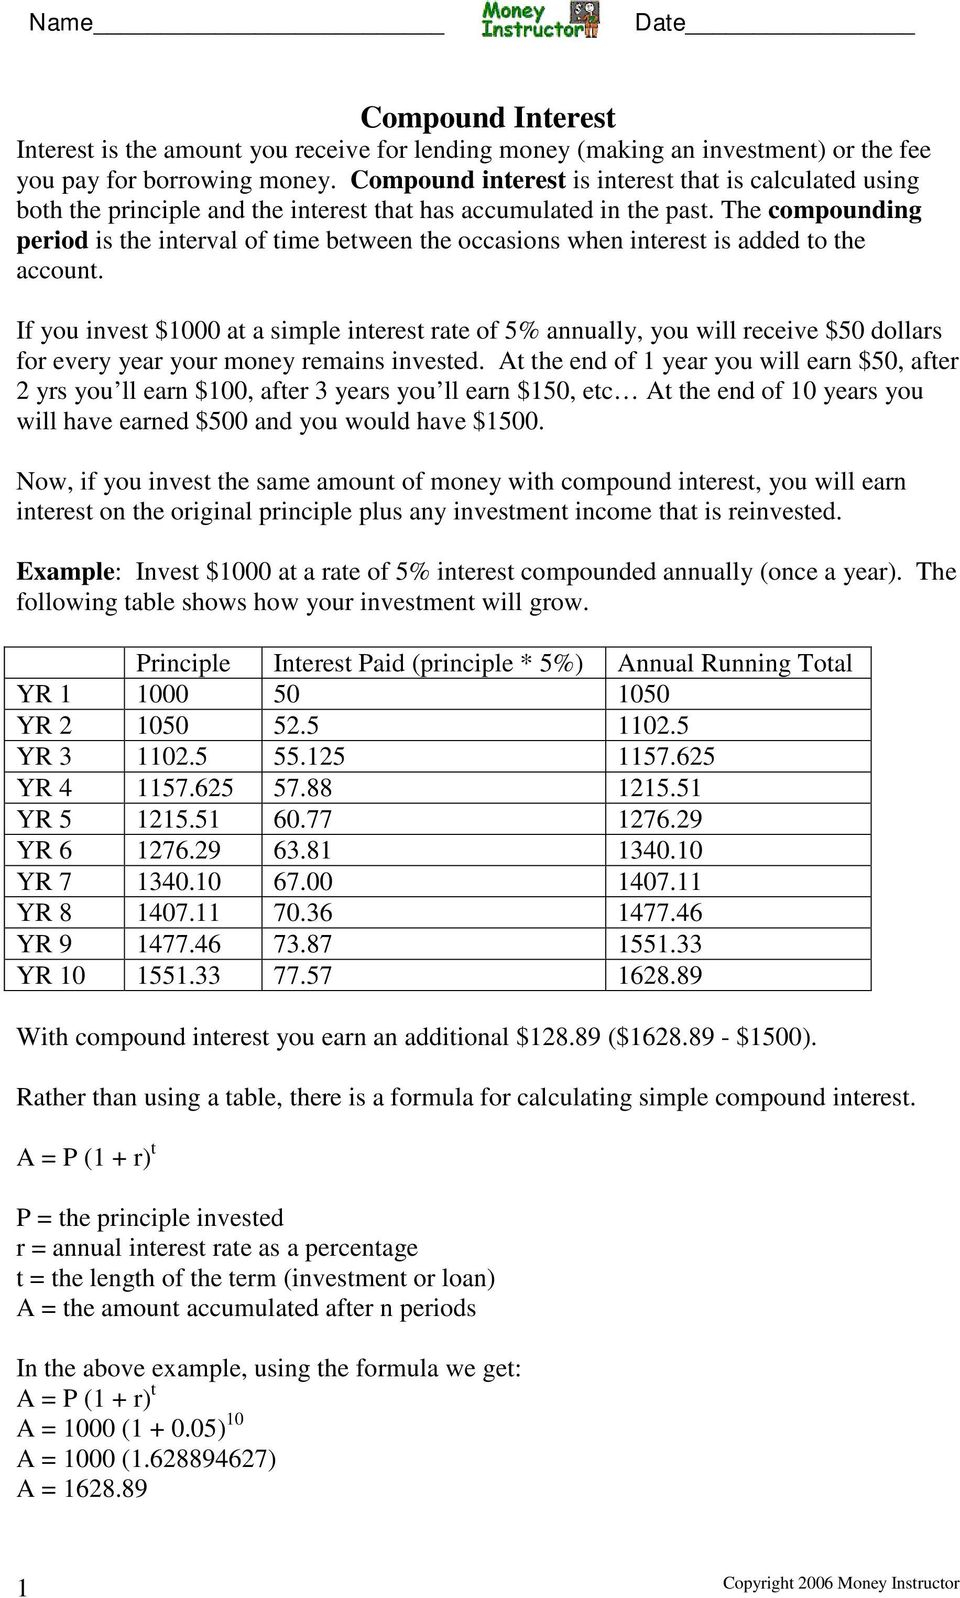 Simple And Compound Interest Worksheet Answers - Nidecmege